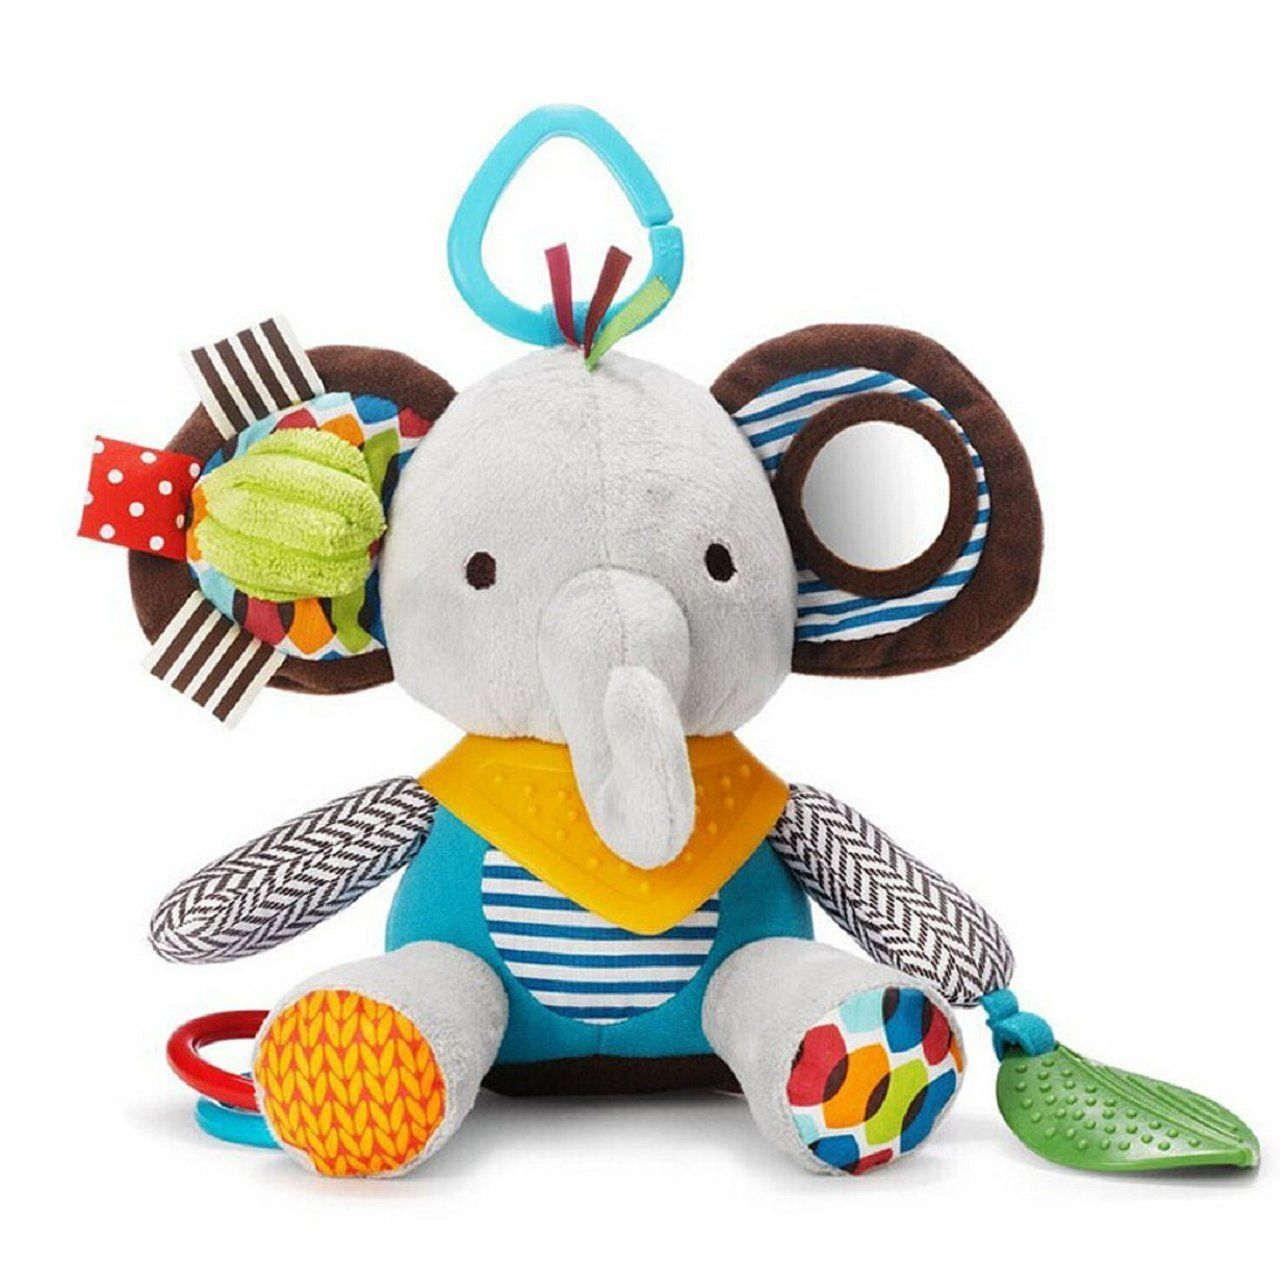 Car hanging soft toys  Amazon Sandistore Baby Kids Car Rattle Multicolor Bed Hanging